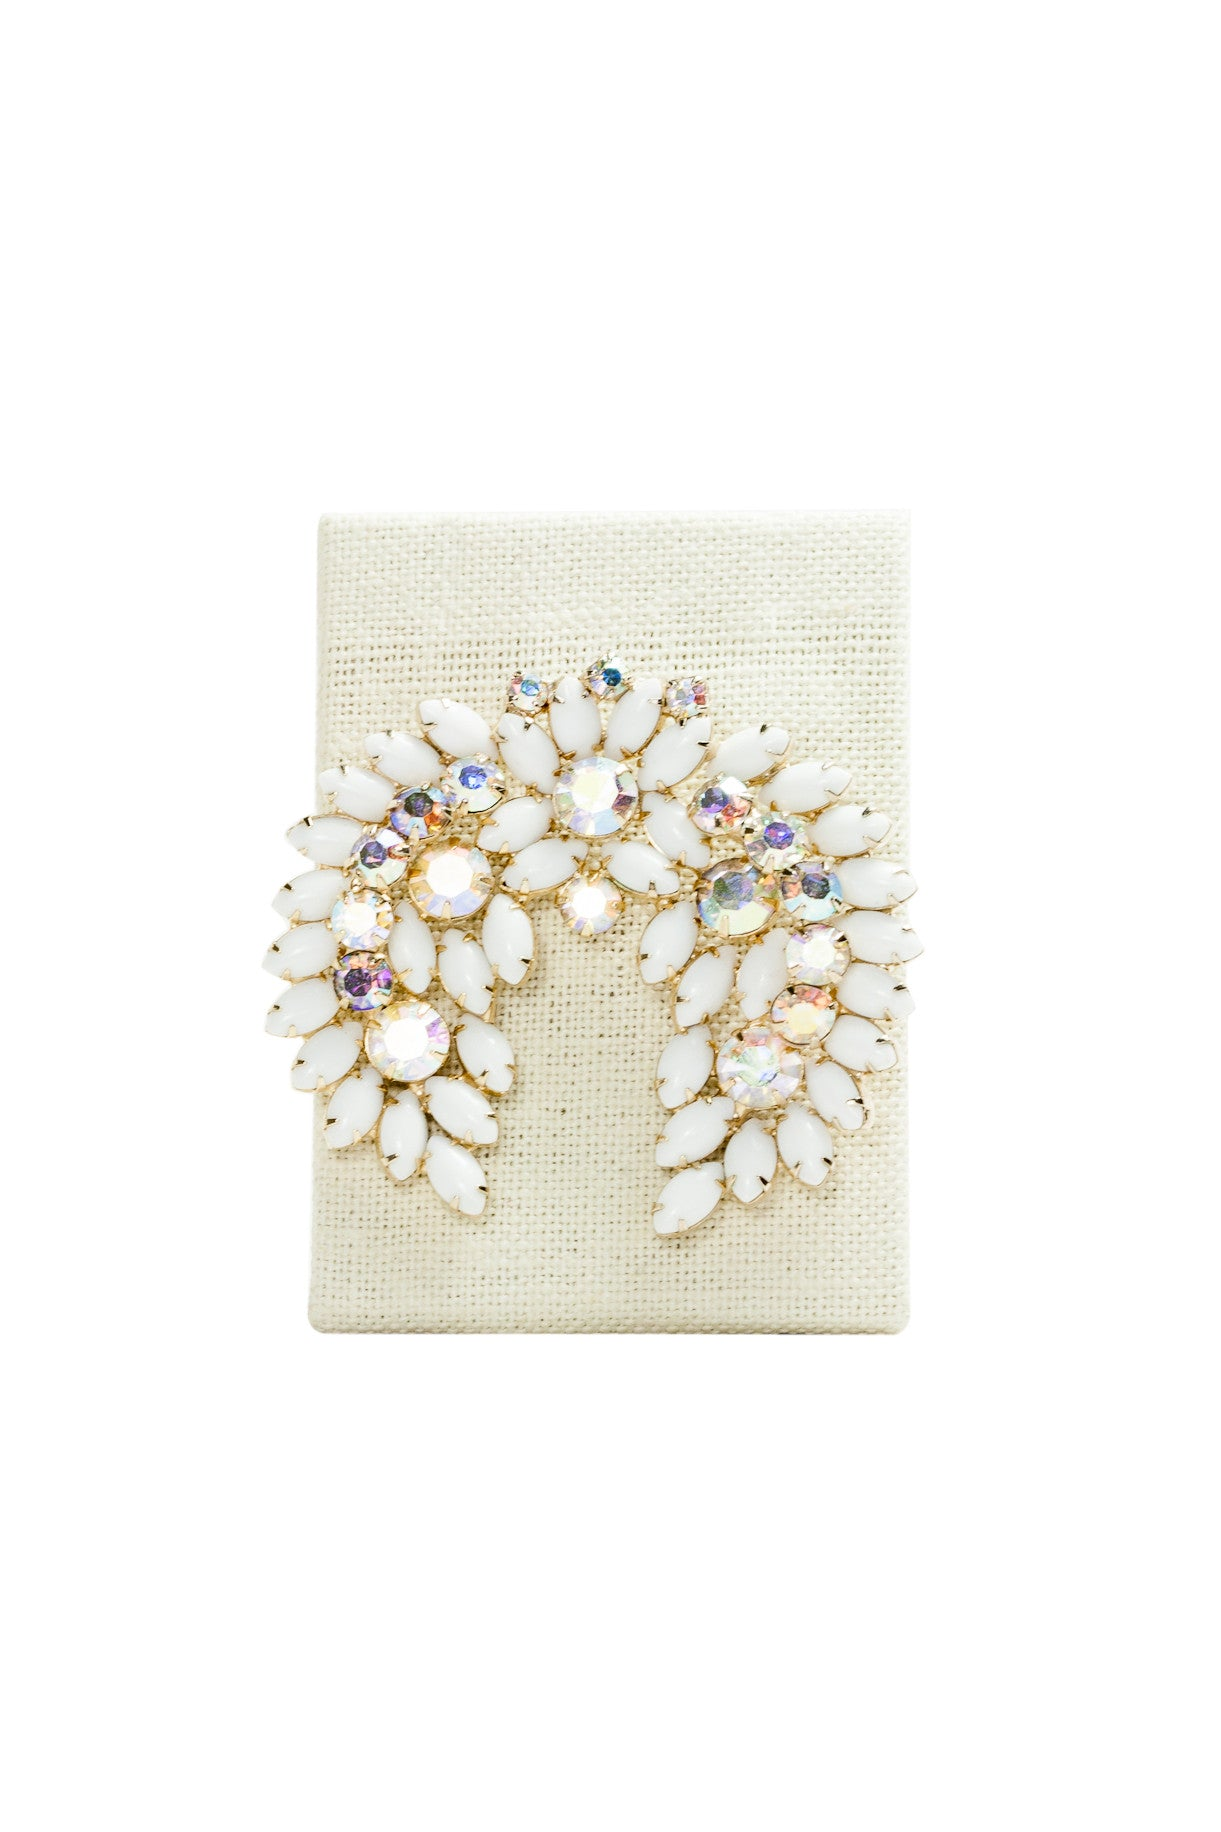 50's__Vintage__White Stone Brooch